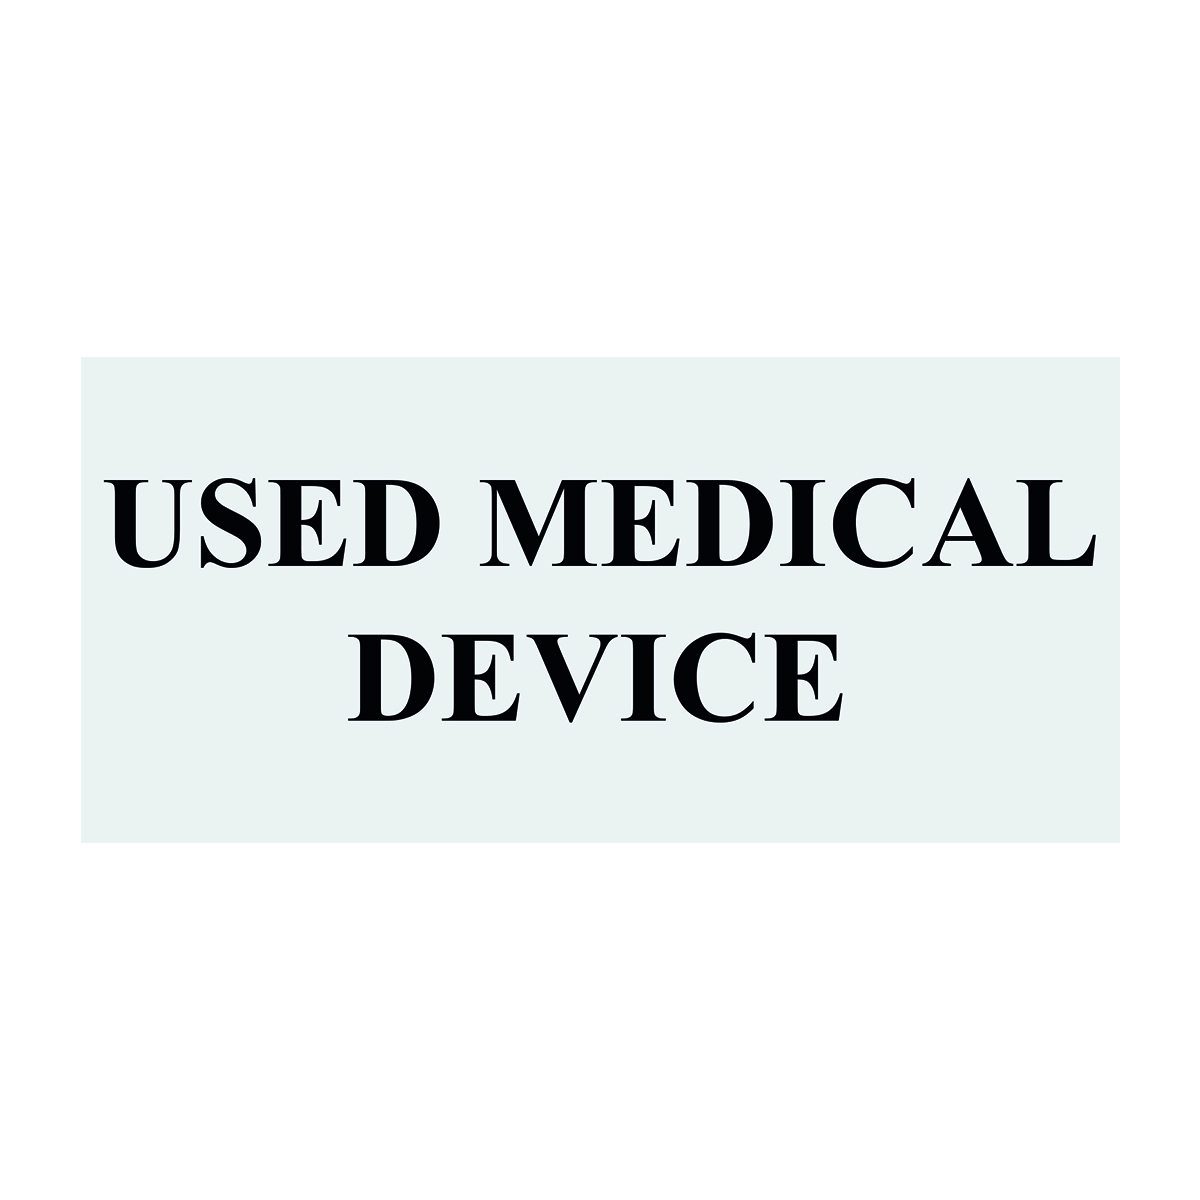 Used Medical Device Label Image